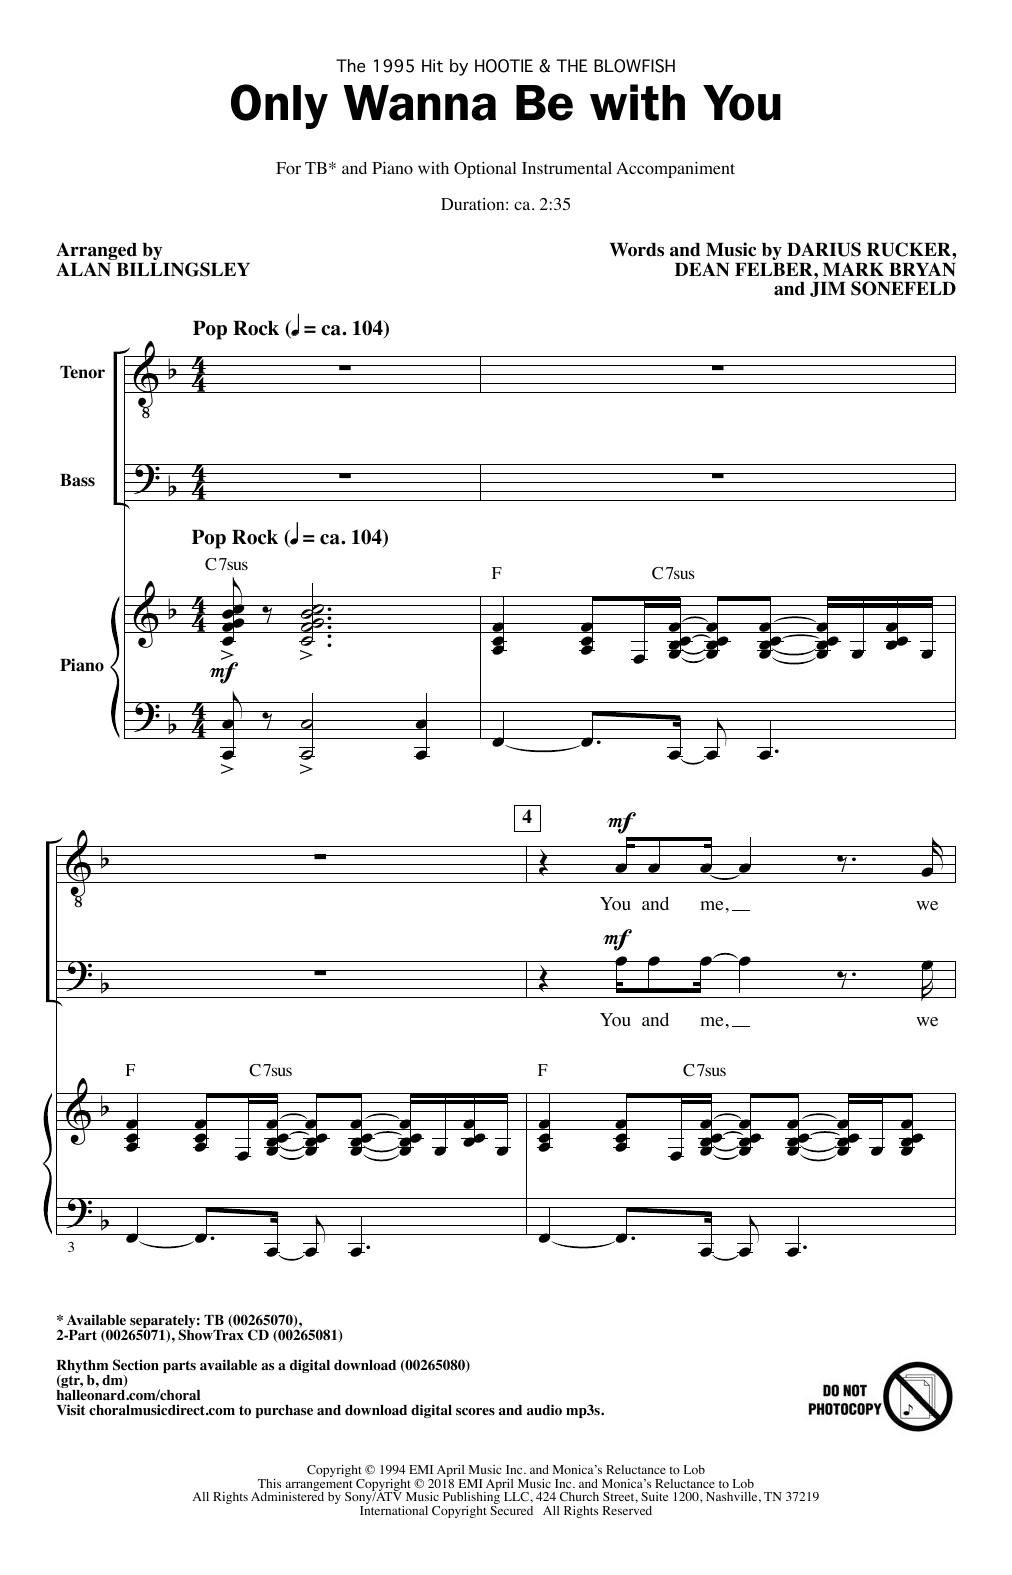 Hootie & The Blowfish Only Wanna Be With You (arr. Alan Billingsley) sheet music notes and chords